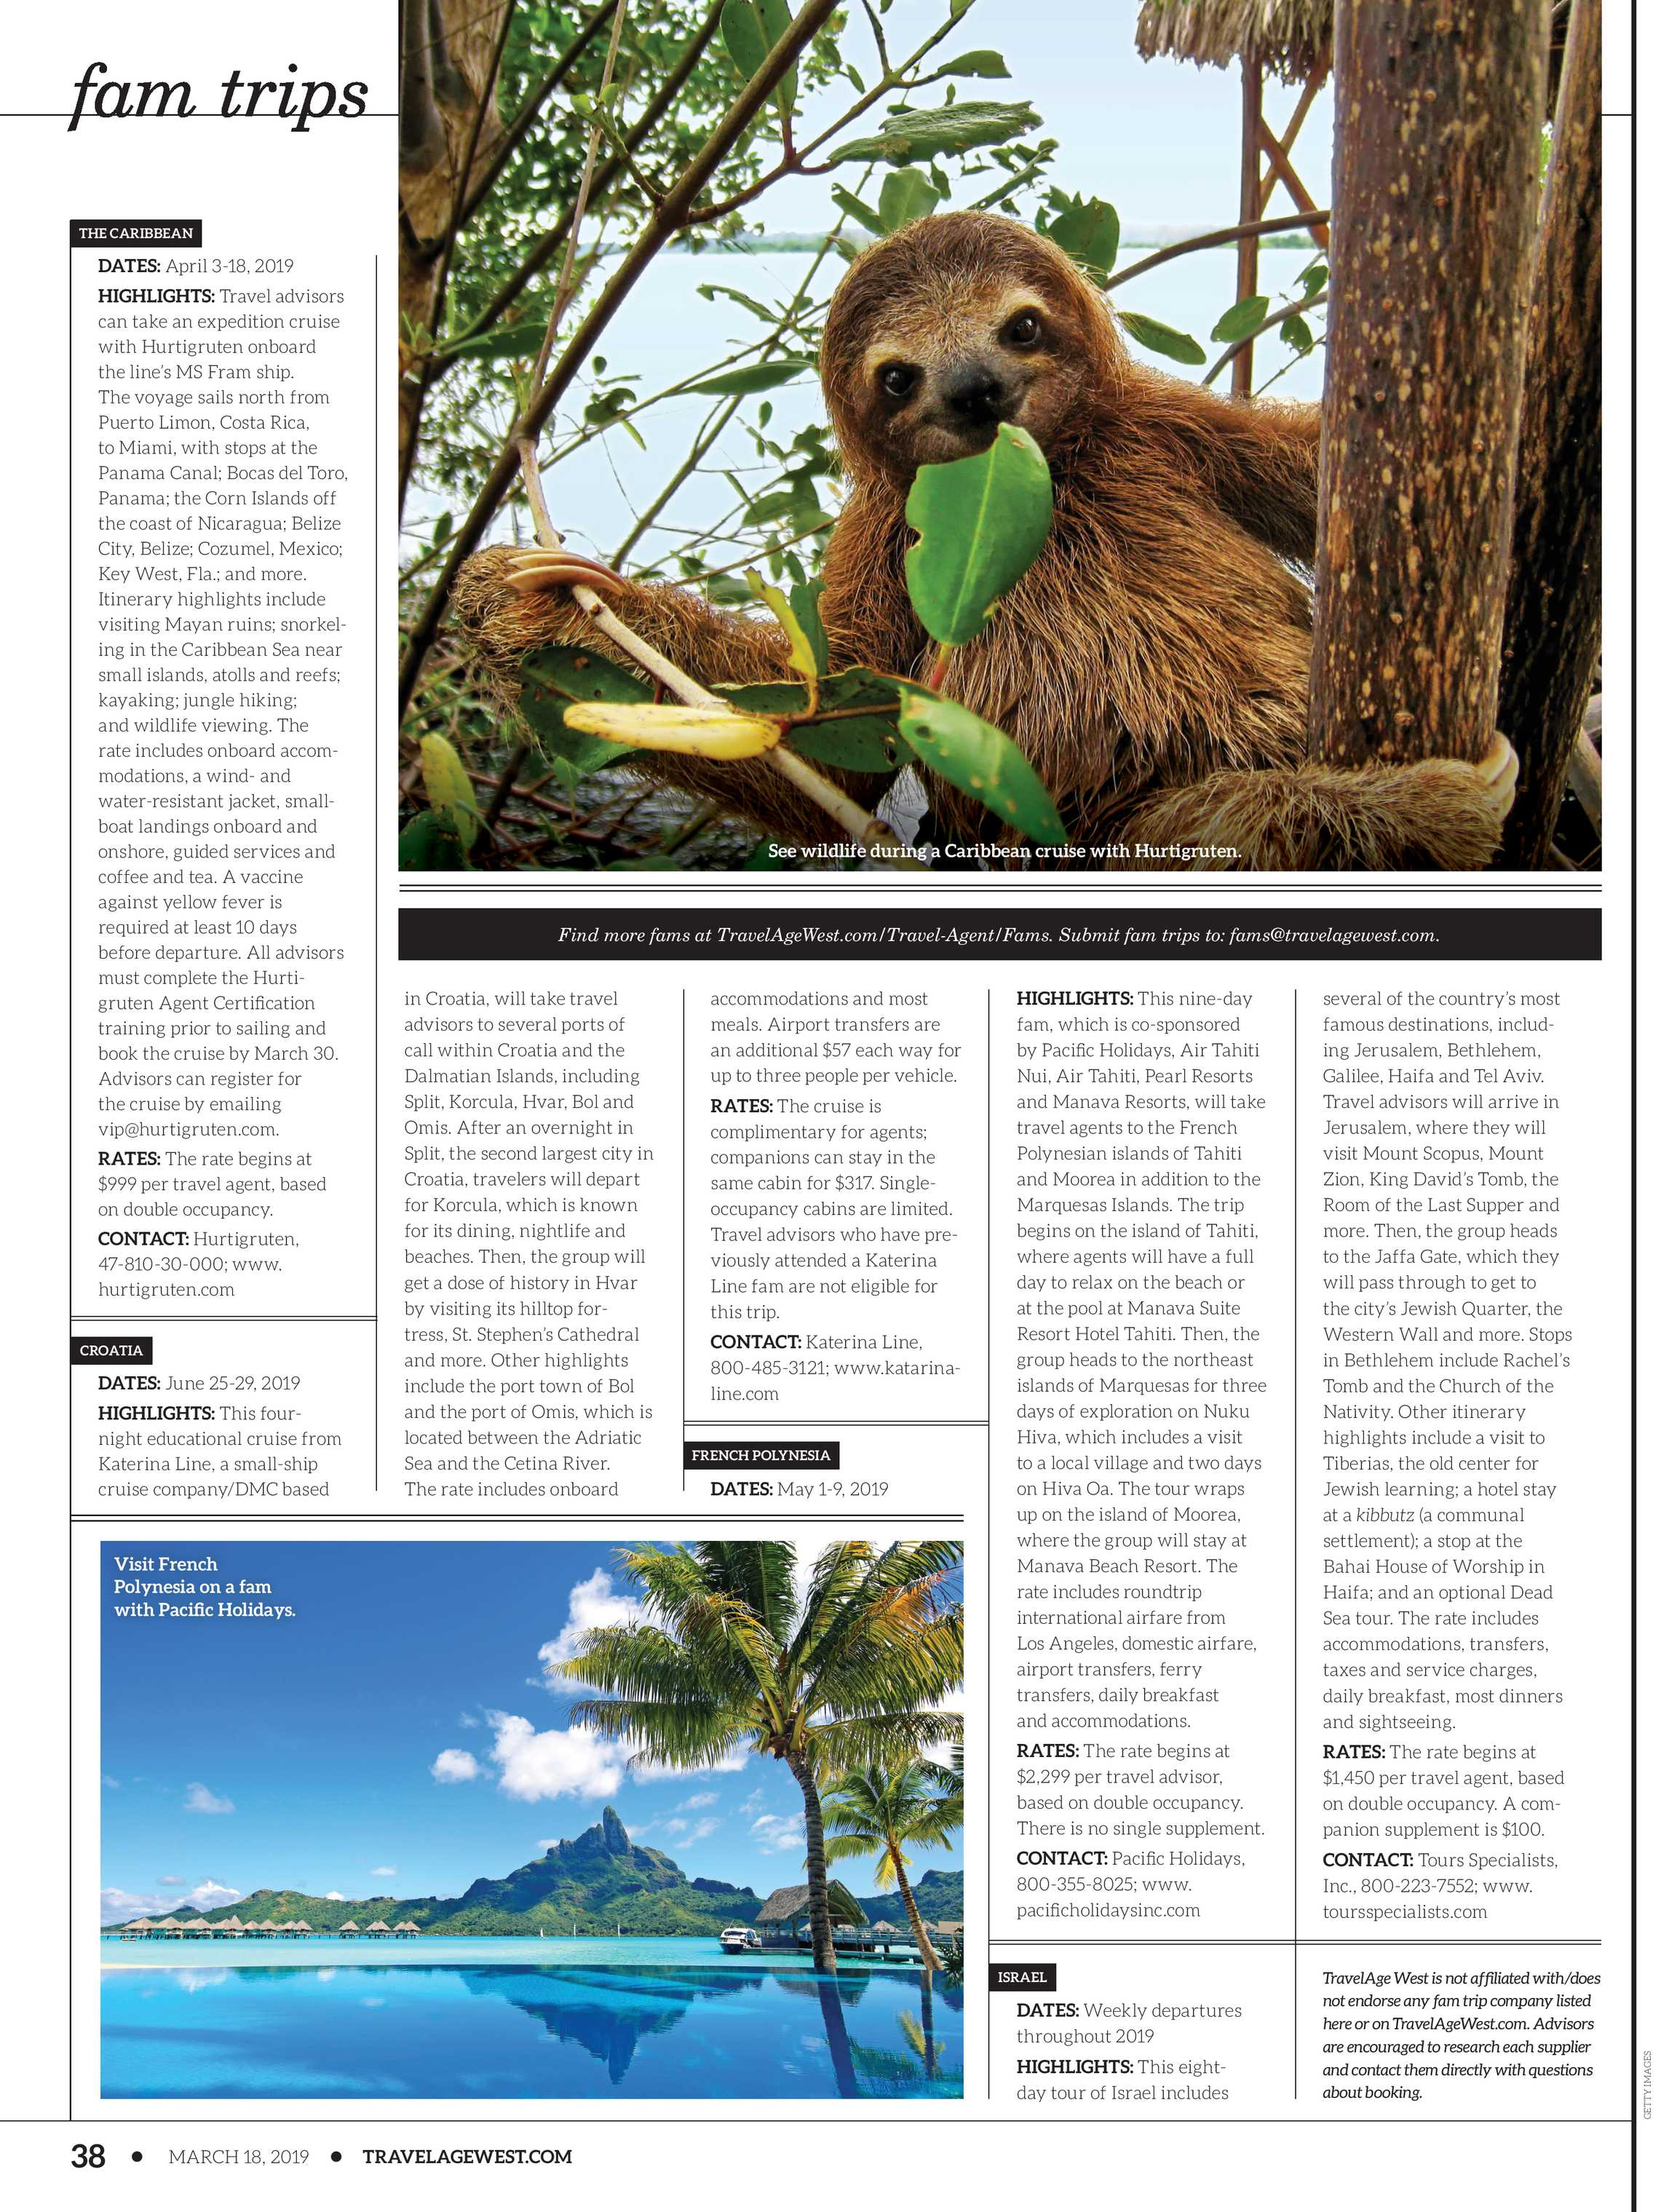 Travel Age West - March 18, 2019 - page 38